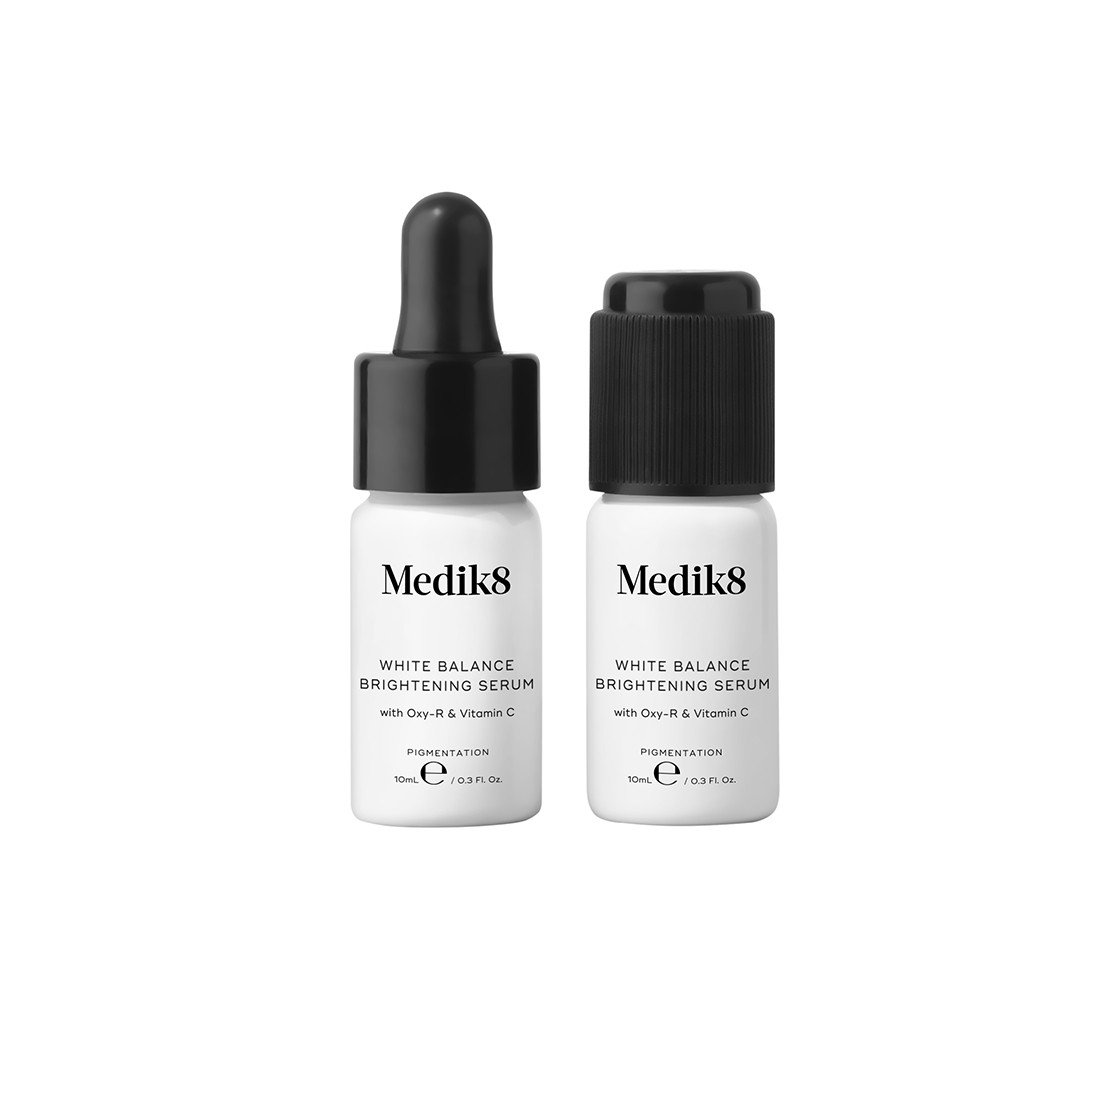 White Balance Brightening Serum